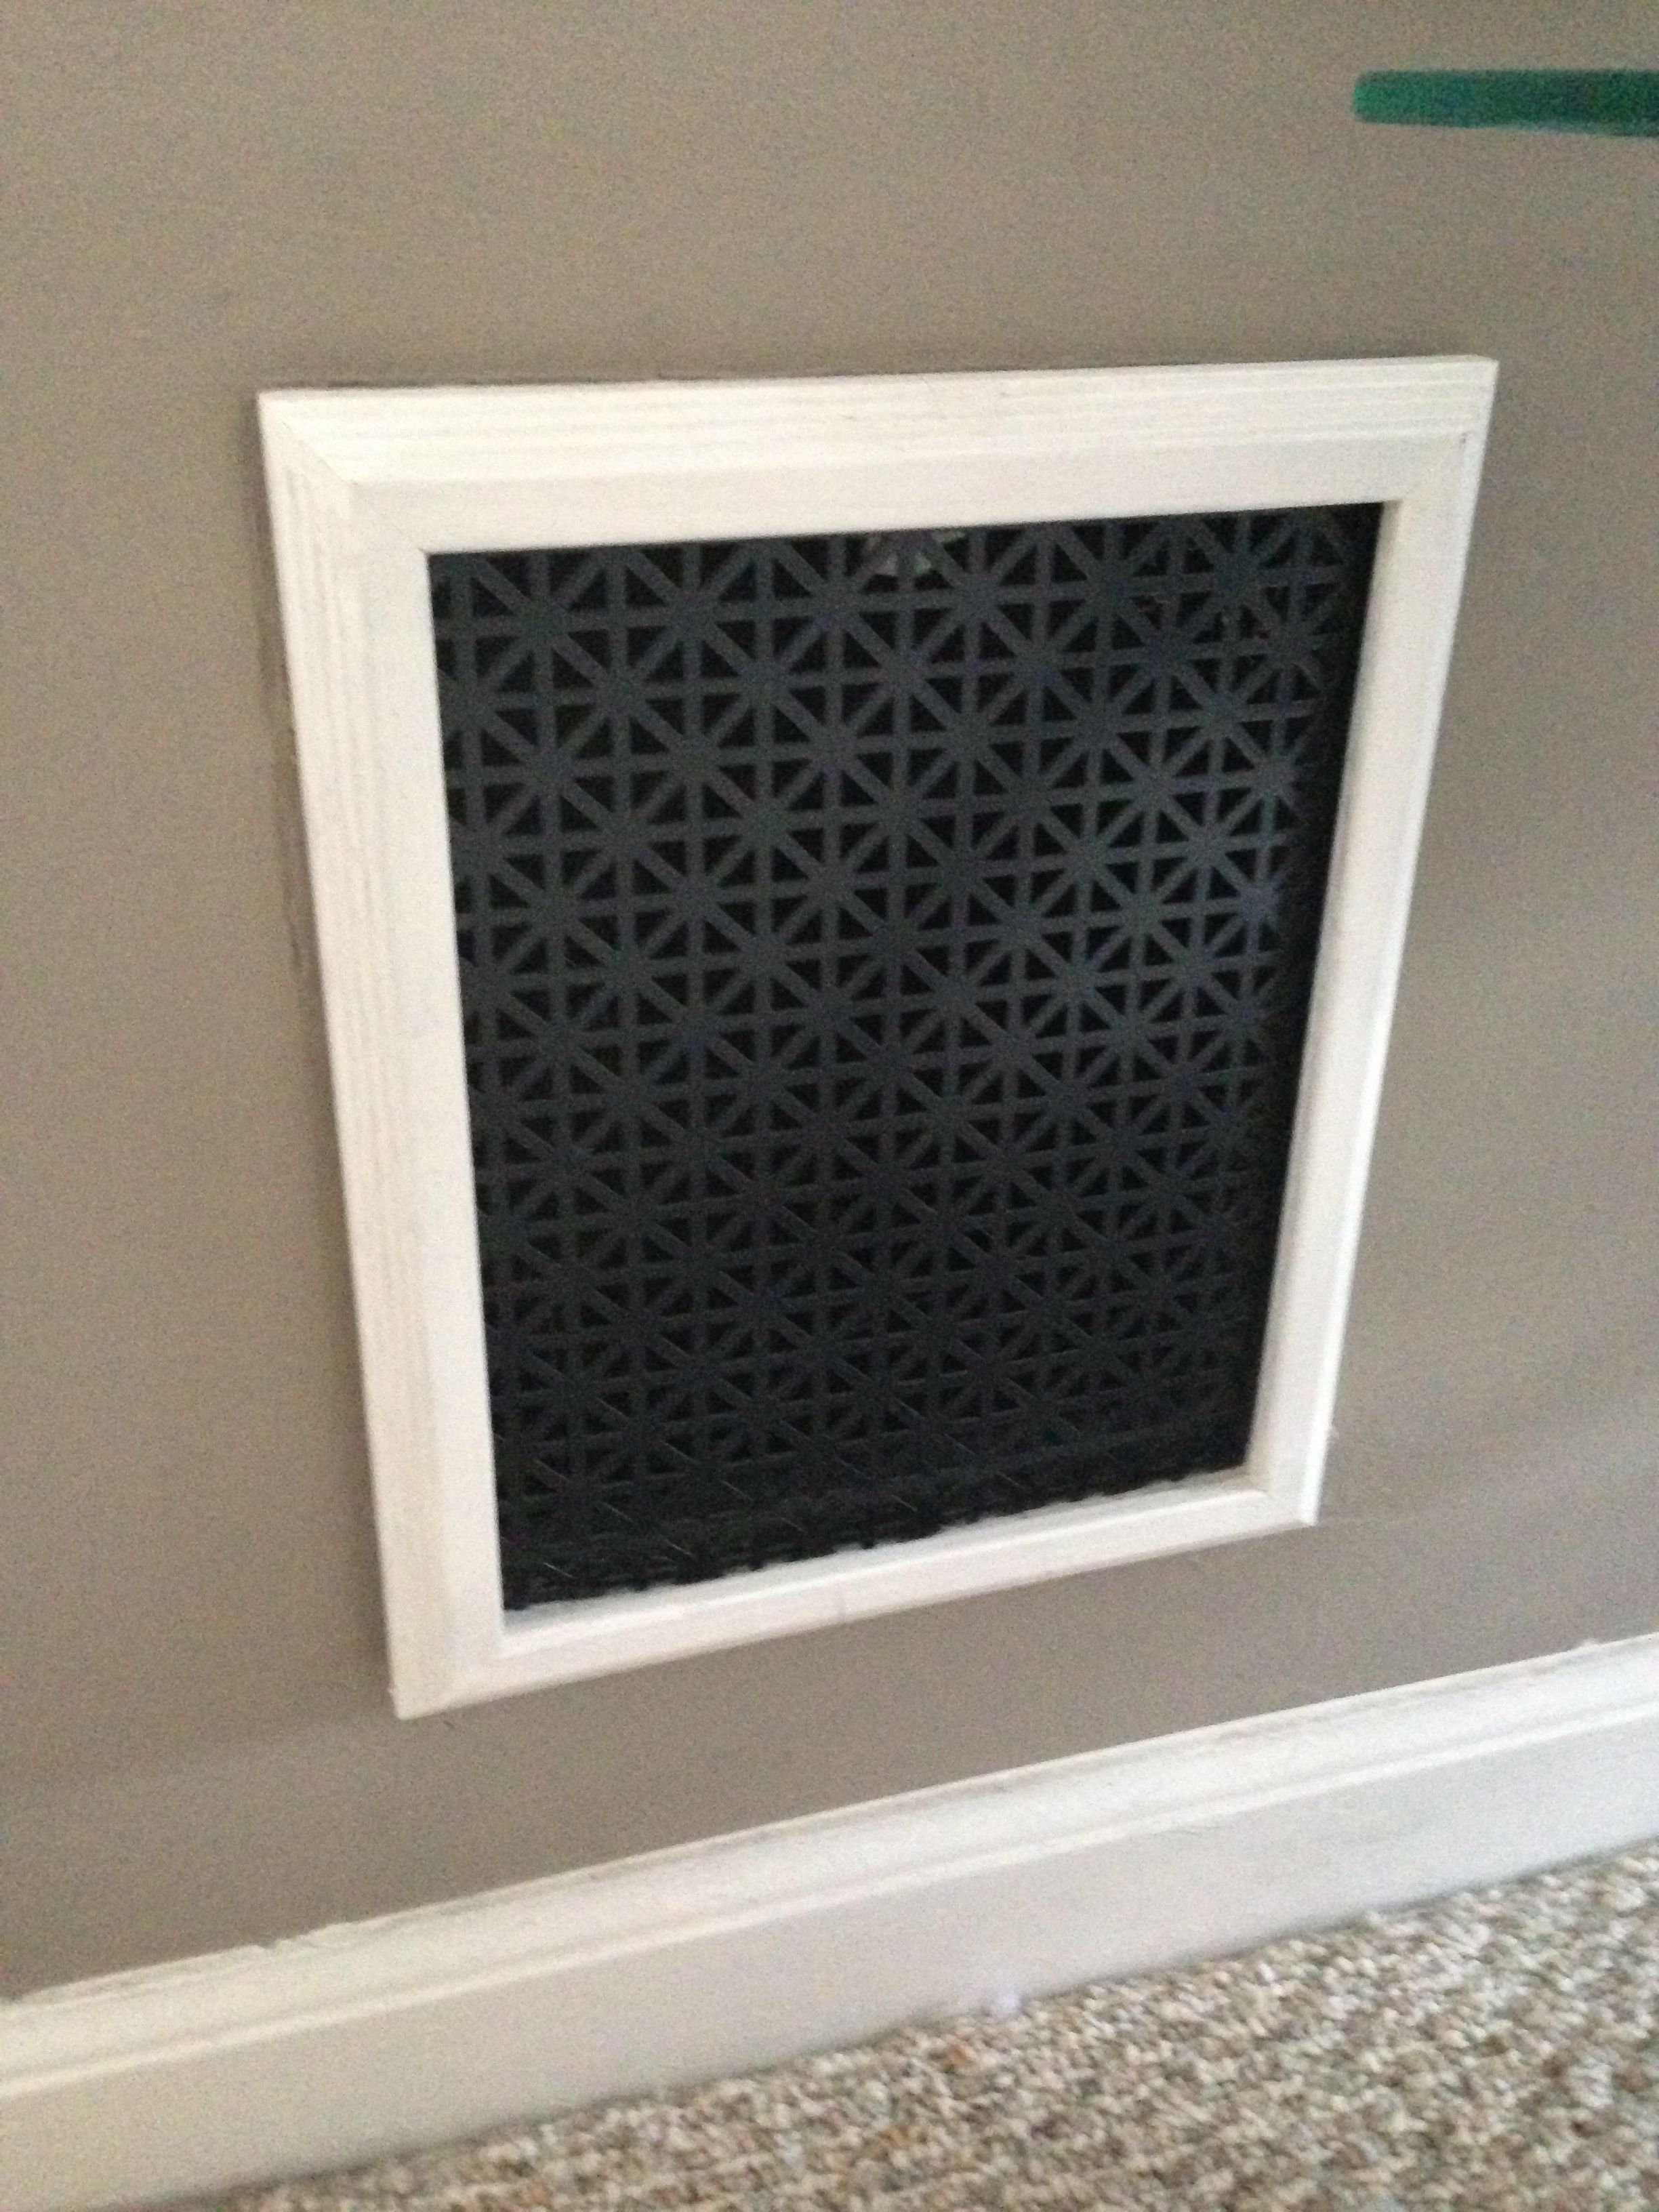 I Replaced My Old Heat Register Covers By Taking An 8x10